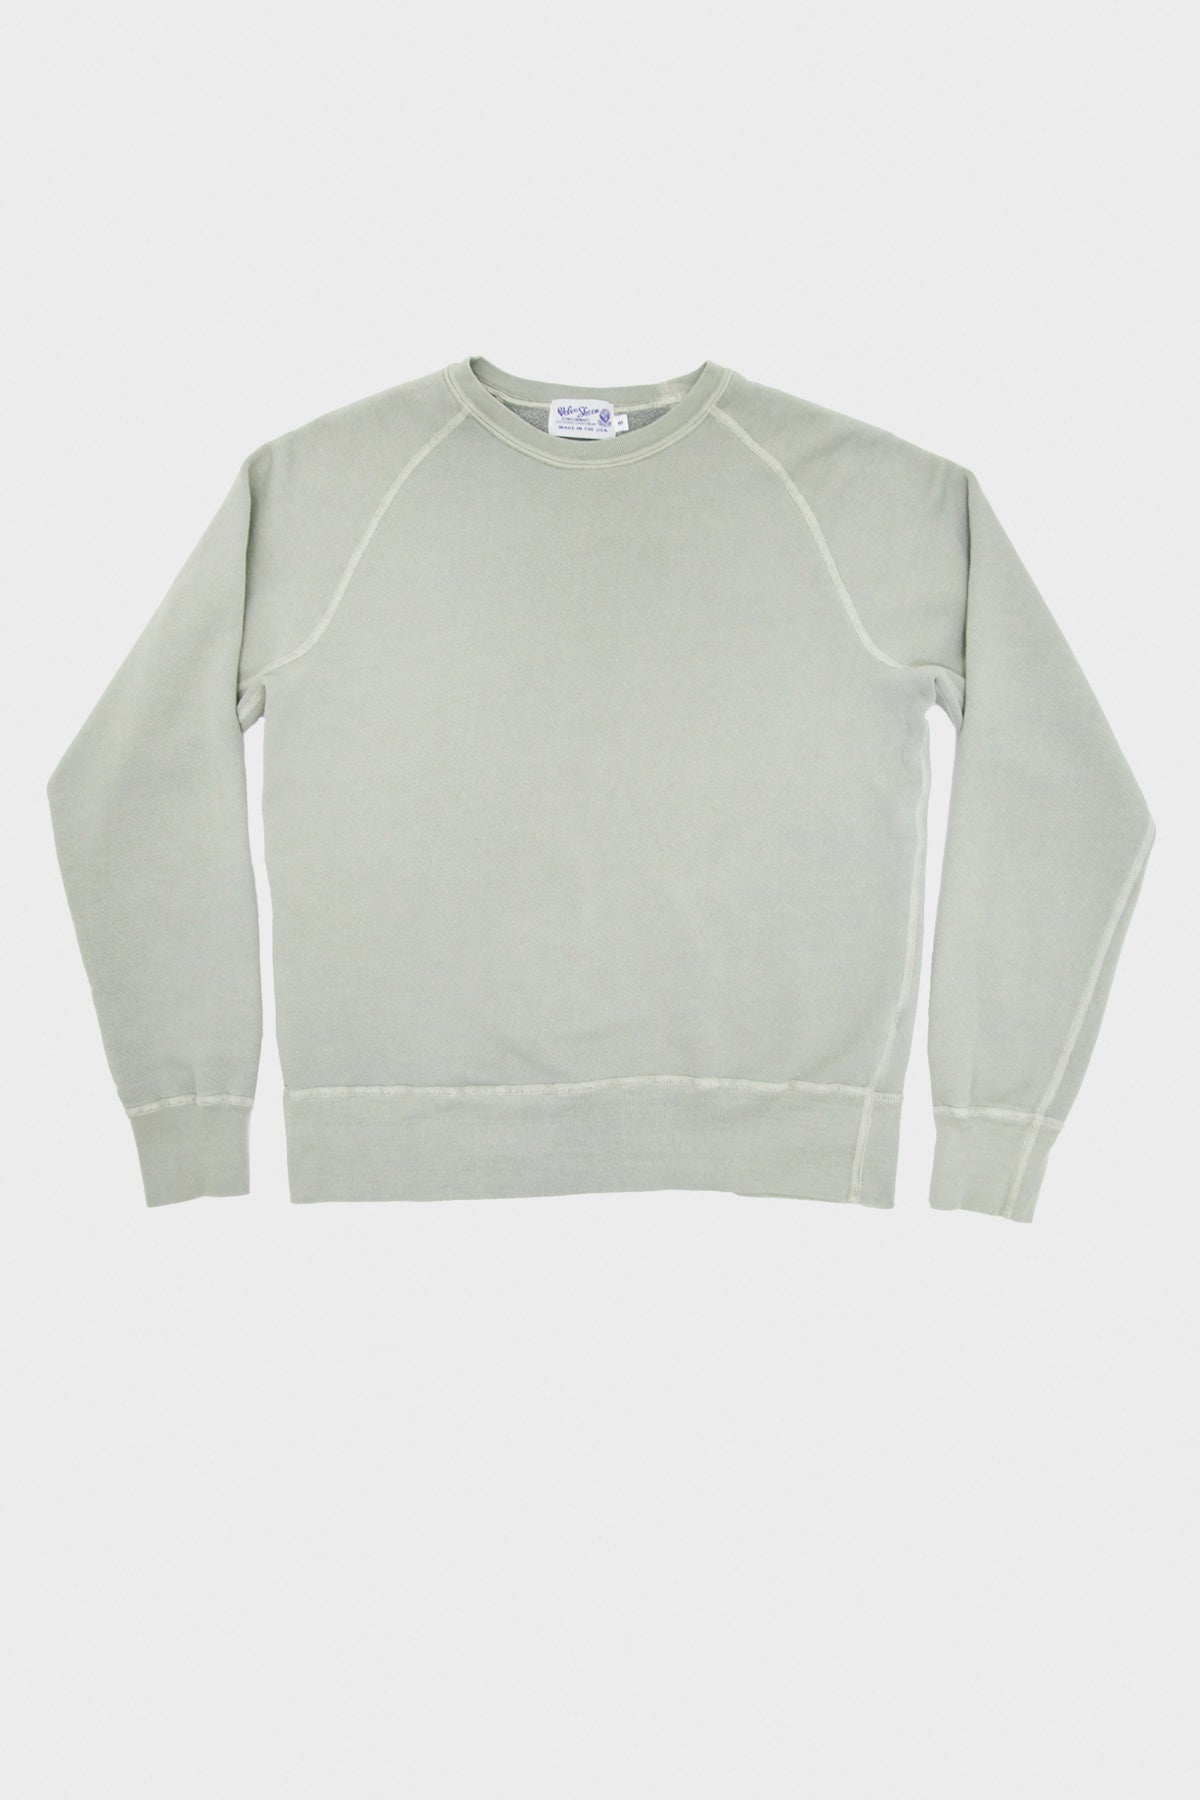 Velva Sheen - 8oz Pigment Freedom Sweatshirt - Grey - Canoe Club